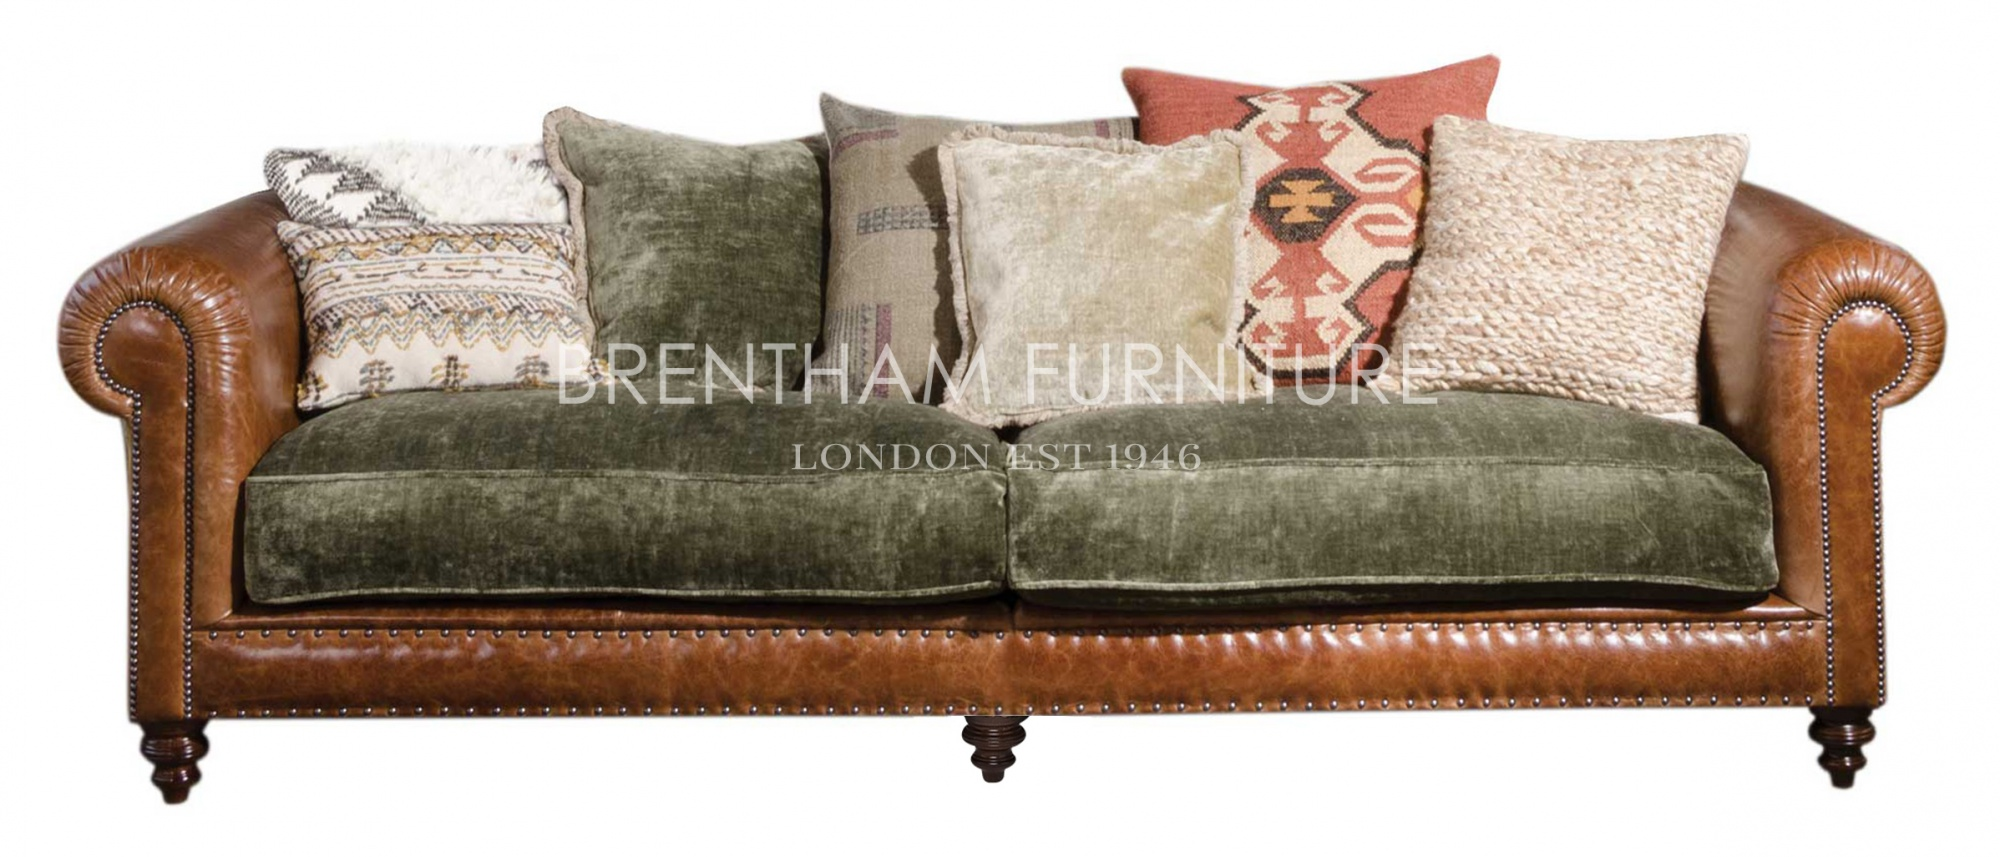 Tetrad Constable Grand Sofa Brentham Furniture